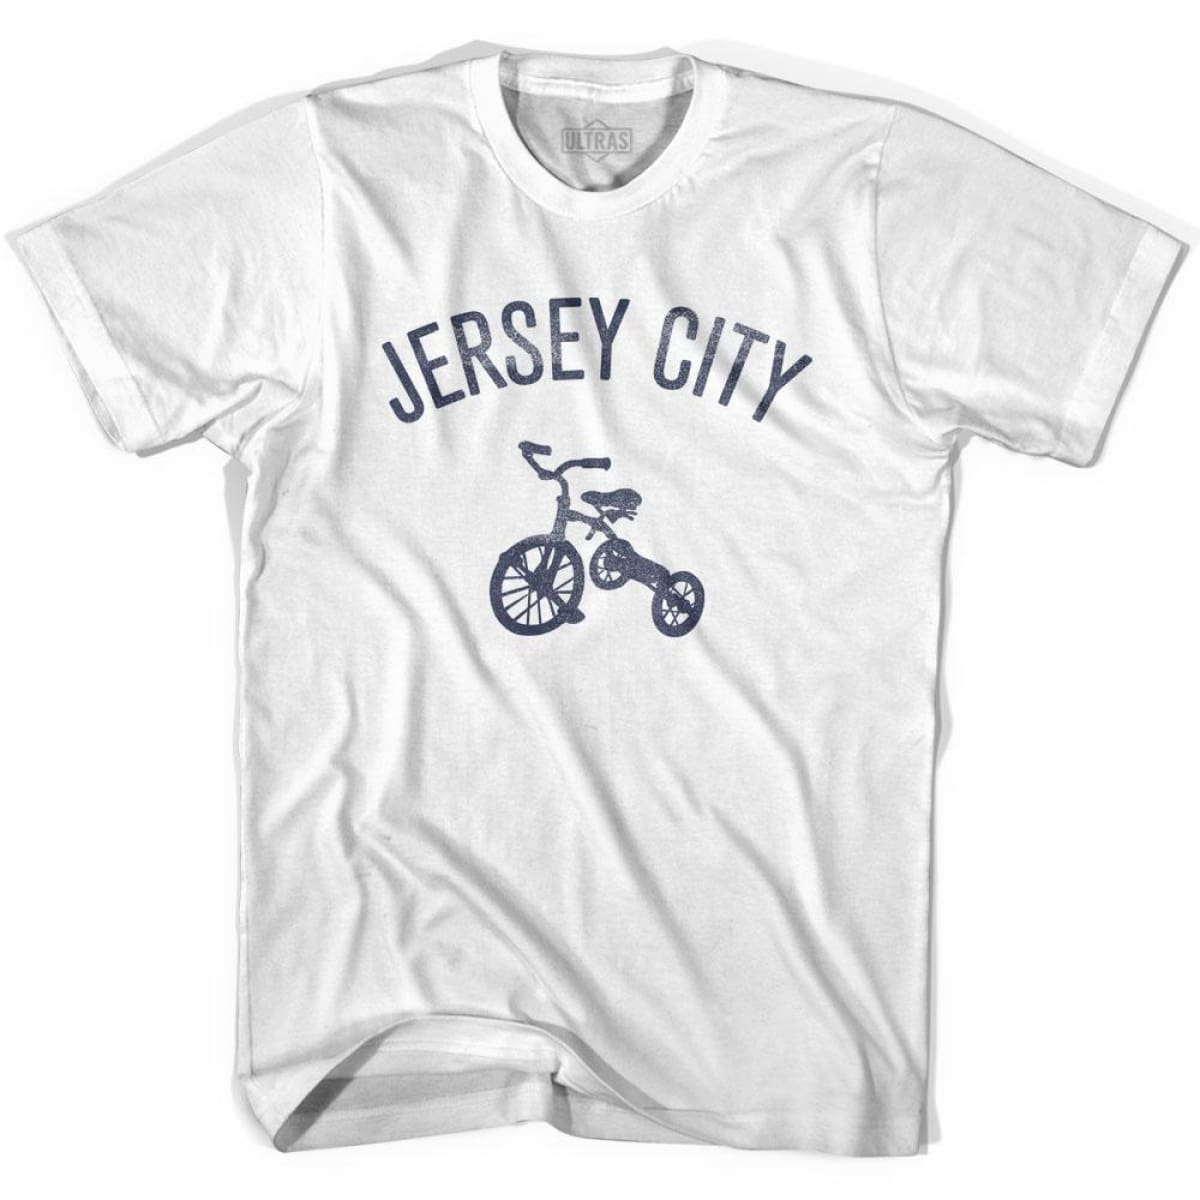 Jersey City Tricycle Womens Cotton T-shirt - Tricycle City